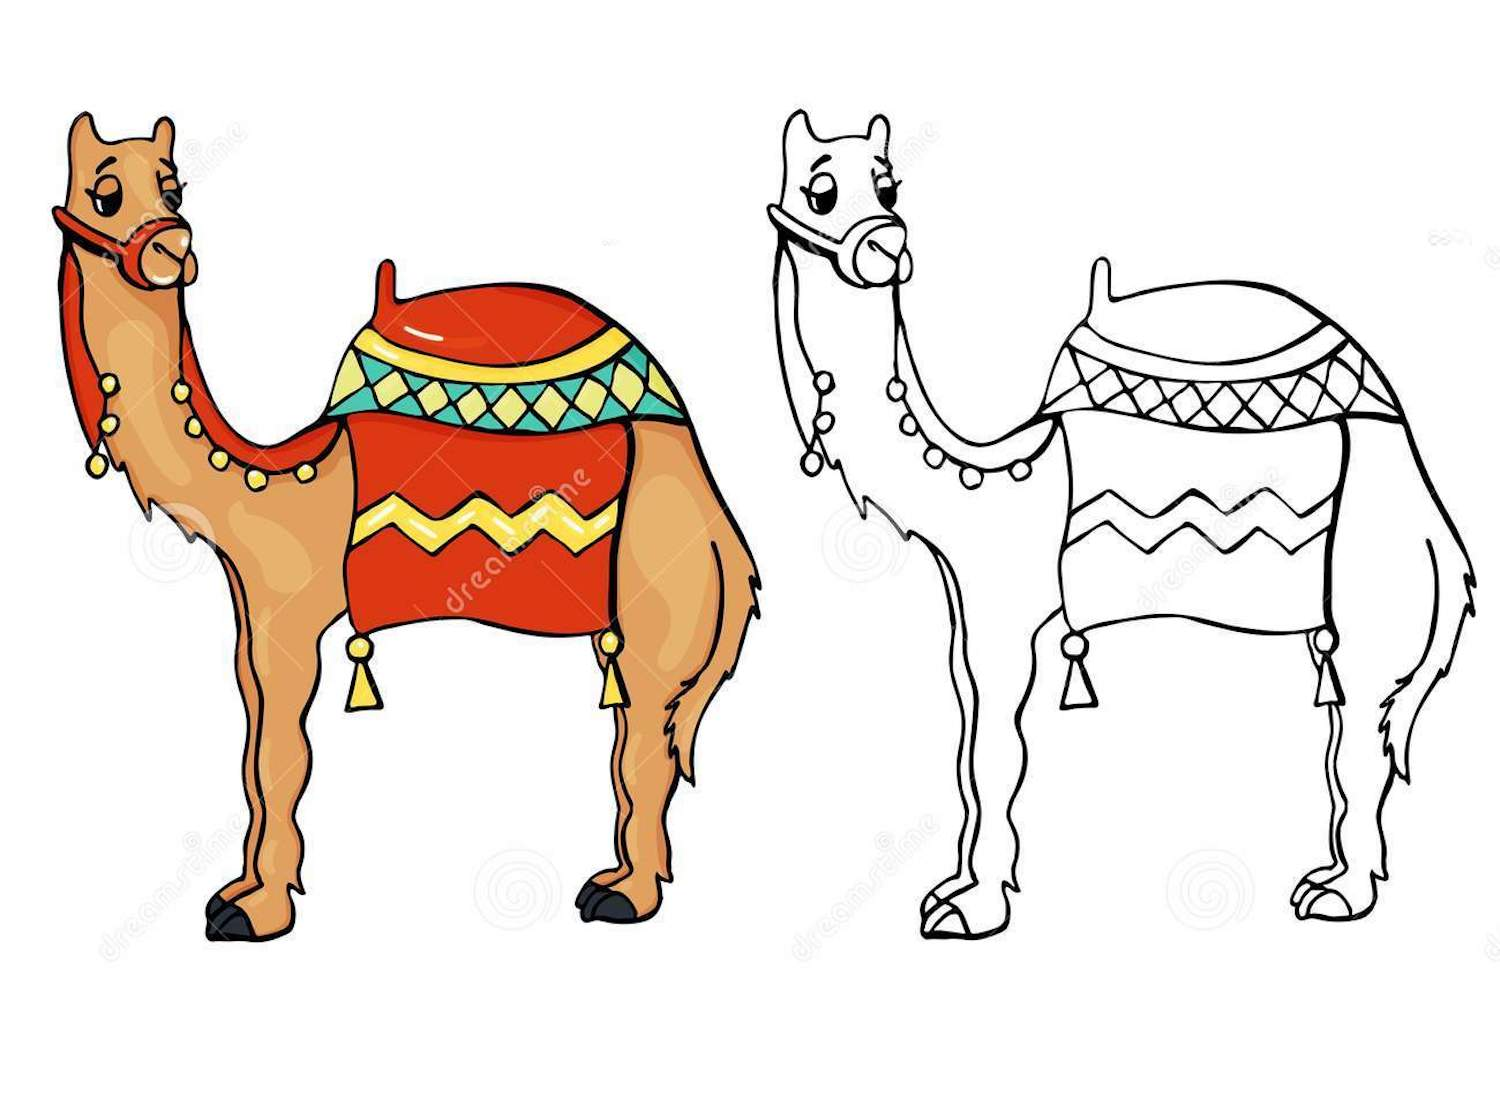 Camel clipart colouring page, Camel colouring page Transparent ... | 1104x1500